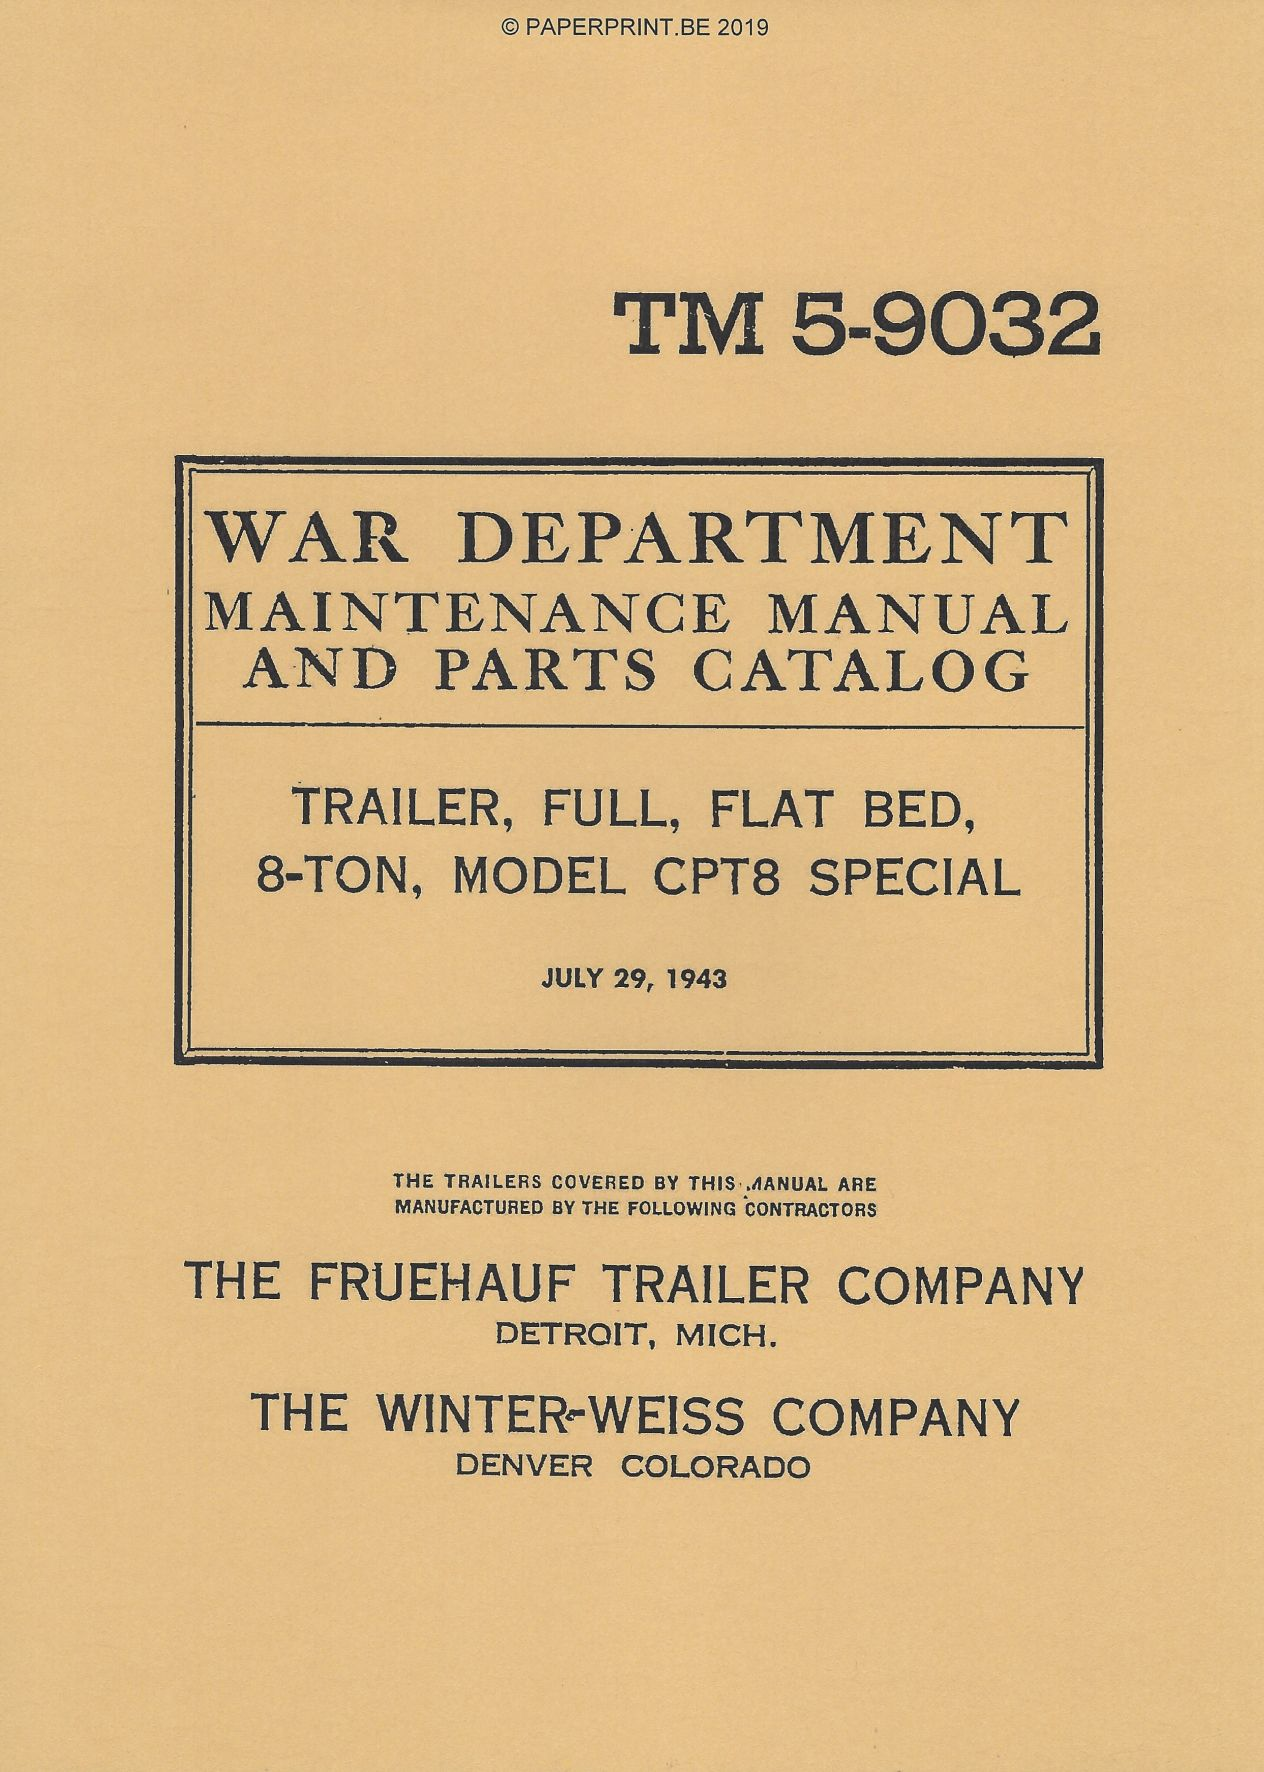 TM 5-9032 US 8-TON CPT8 TRAILER MAINTENANCE MANUAL AND PARTS CATALOG